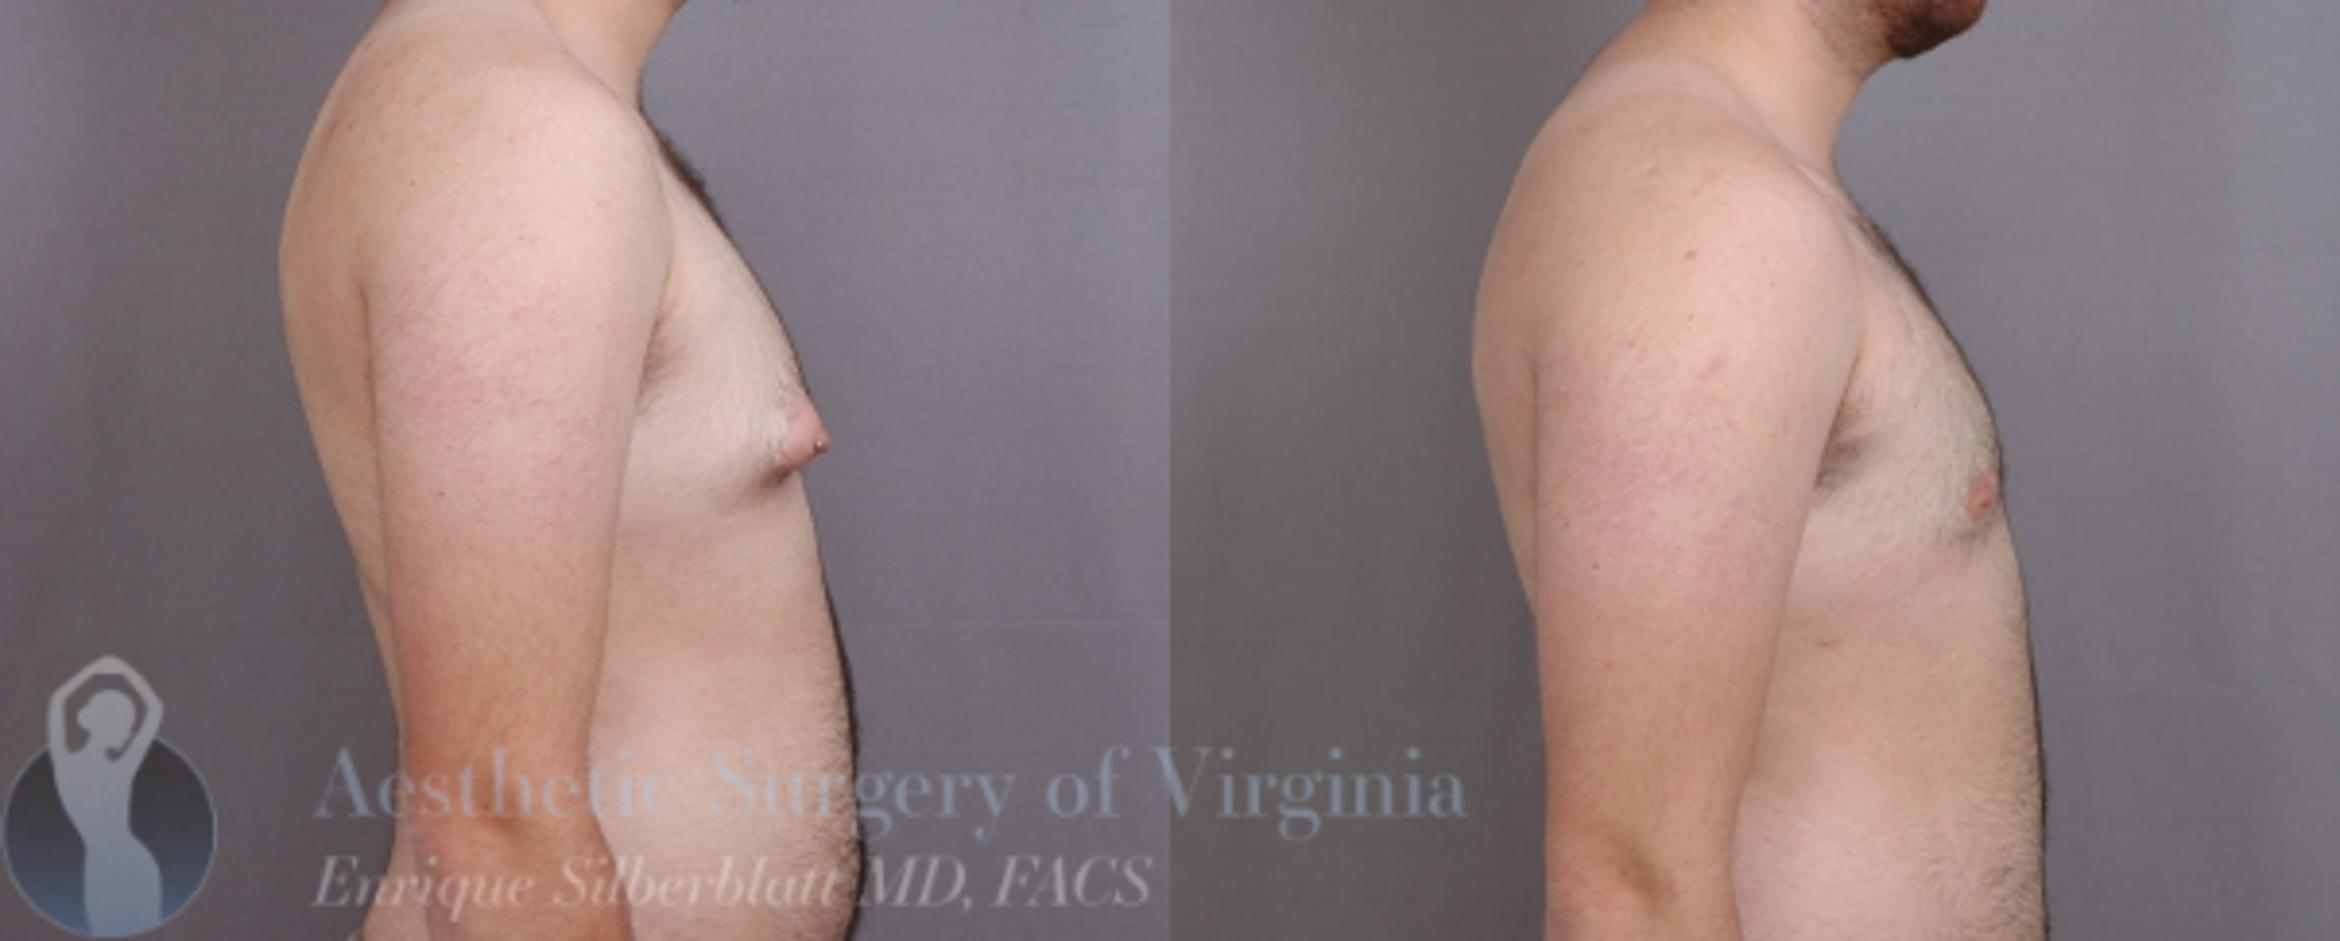 Female to Male Breast Surgery Case 58 Before & After View #5 | Roanoke, VA | Aesthetic Surgery of Virginia: Enrique Silberblatt, MD